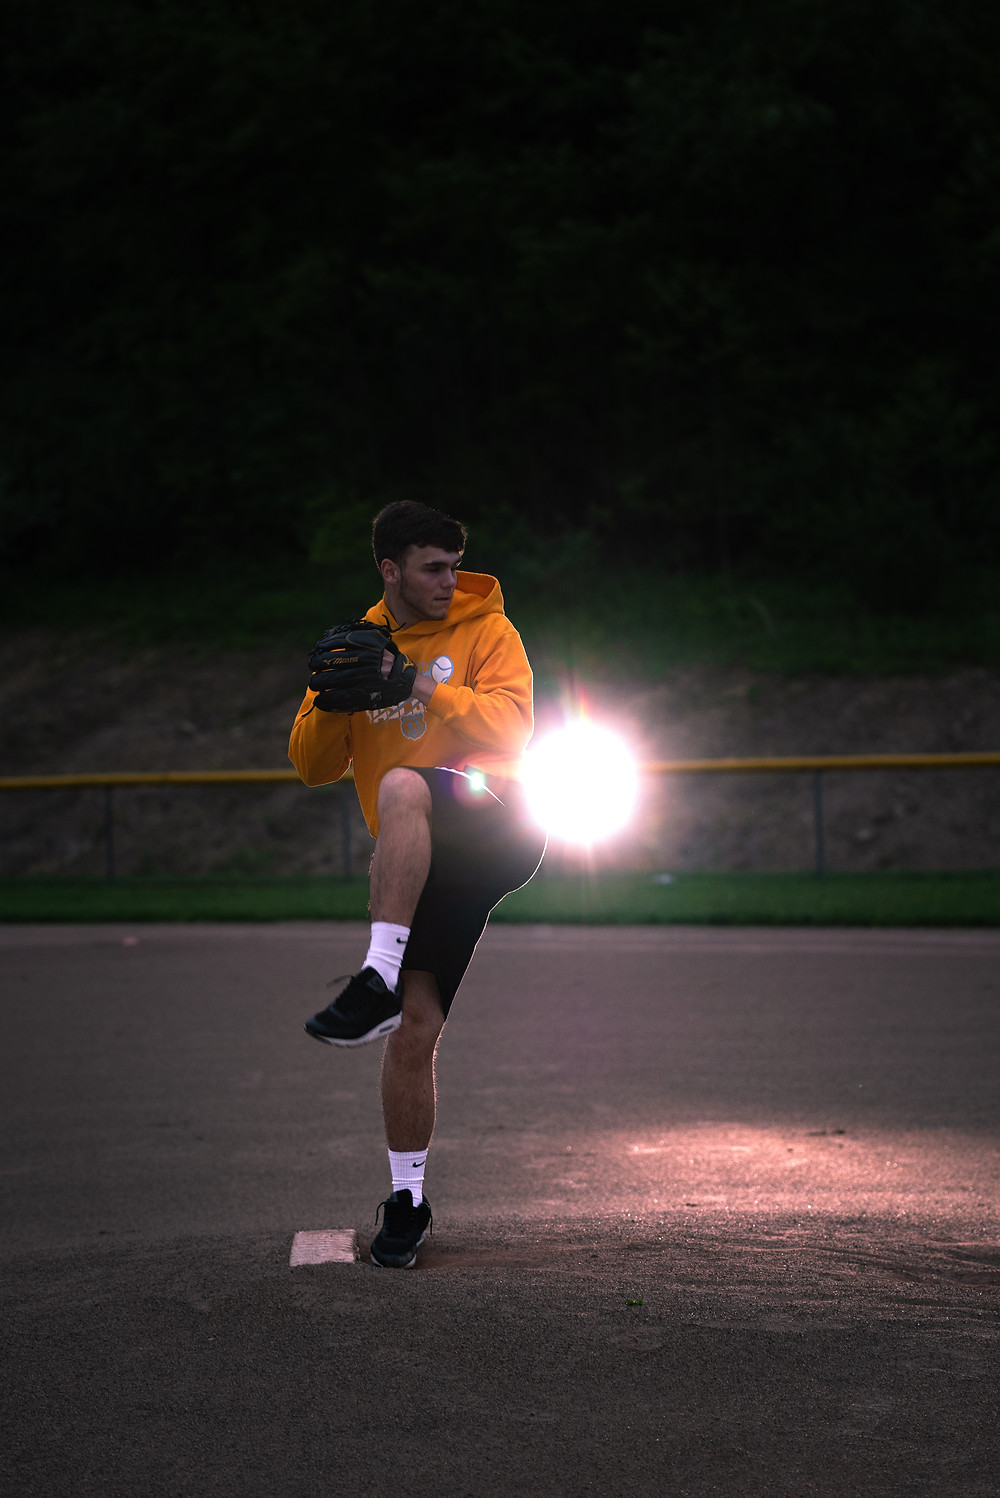 Senior guy photography session at night on the baseball field near Pittsburgh